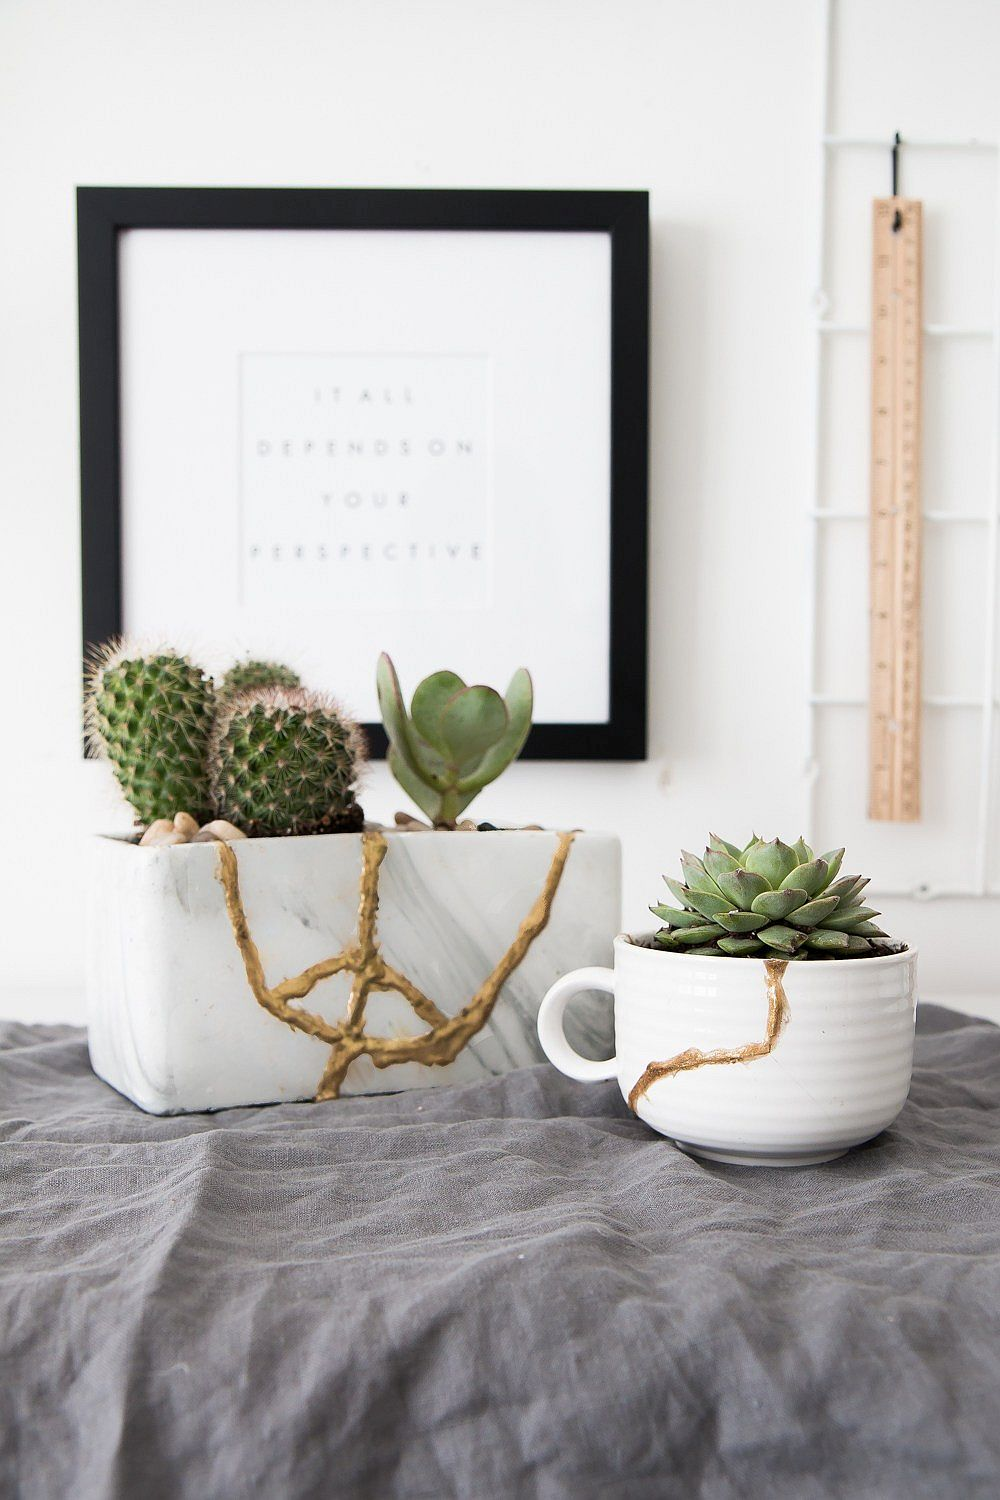 Fashionable DIY Kintsugi planters in glittering gold